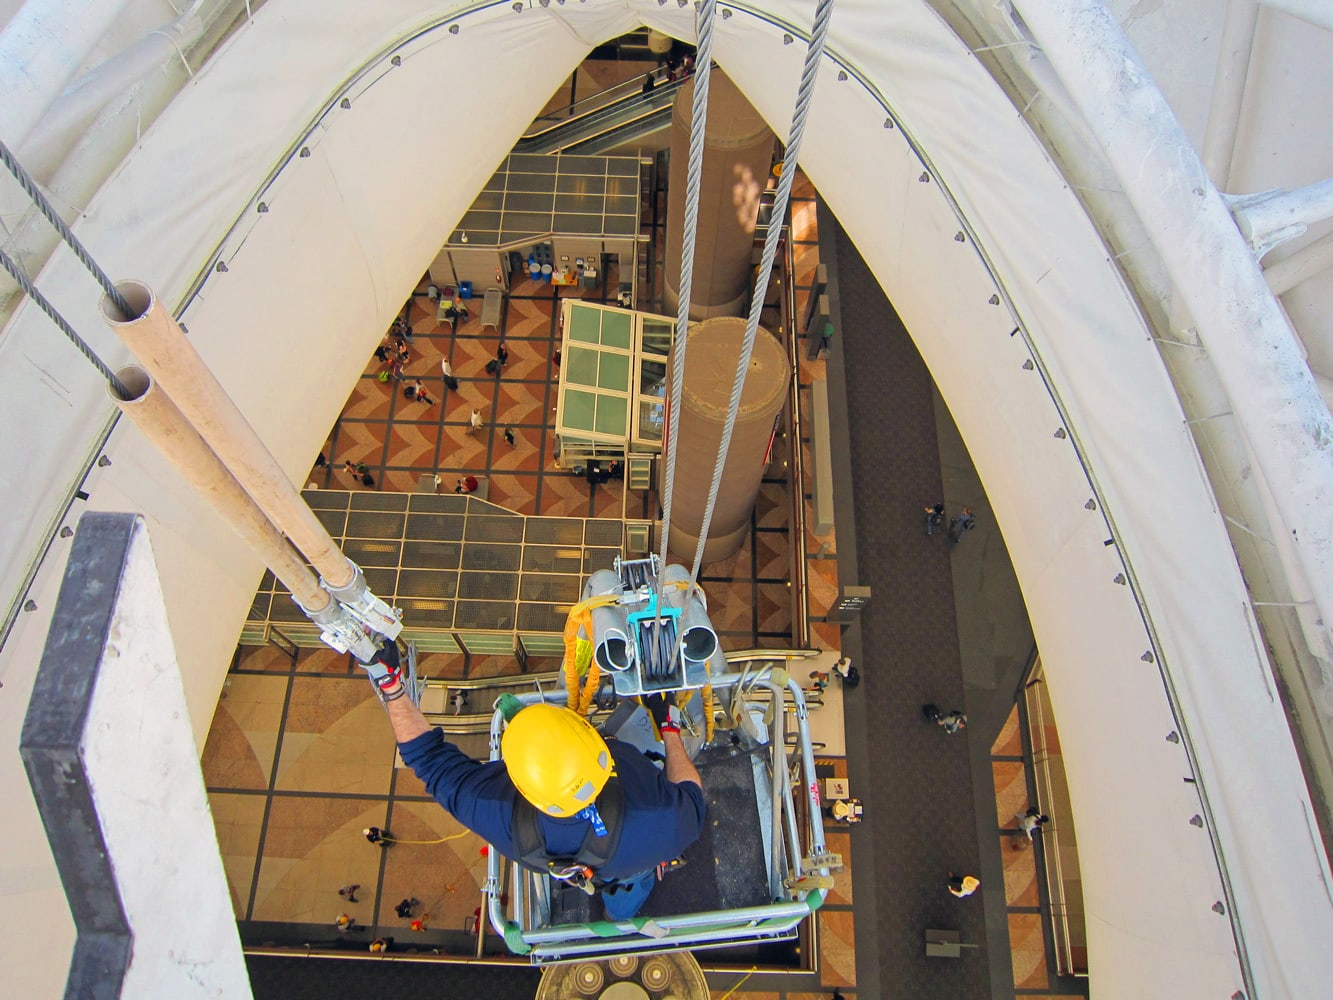 High rope maintenance member makes repairs to the roof at Denver International Airport under the close supervision of Colorado Mountain School Guide. CMS Guides often assist with industrial, film and entertainment rigging services.